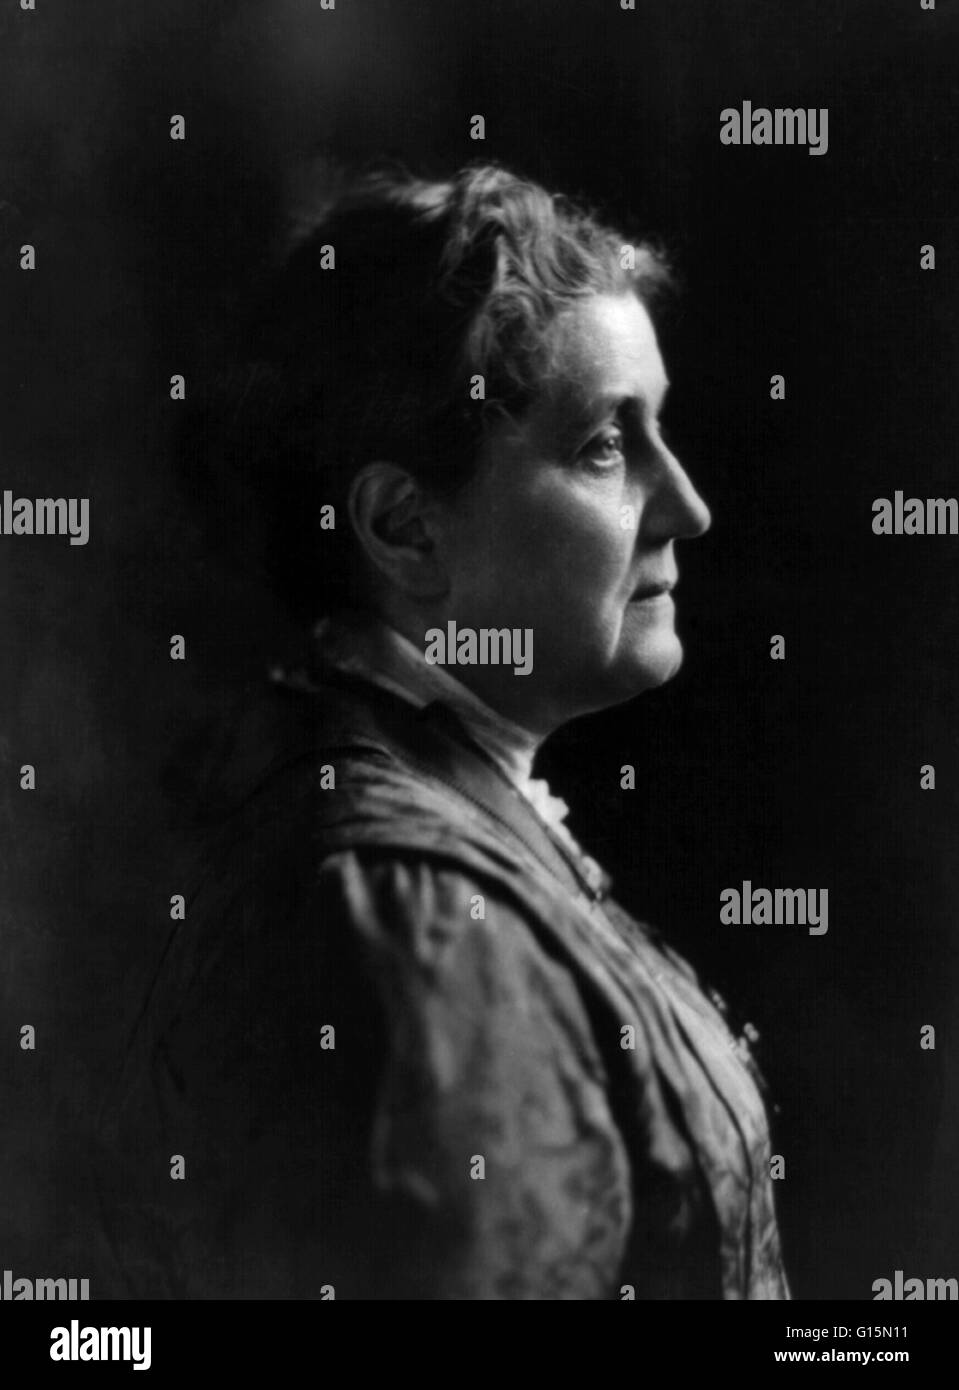 Jane Addams (September 6, 1860 - May 21, 1935) was a pioneer settlement worker, founder of Hull House in Chicago, Stock Photo